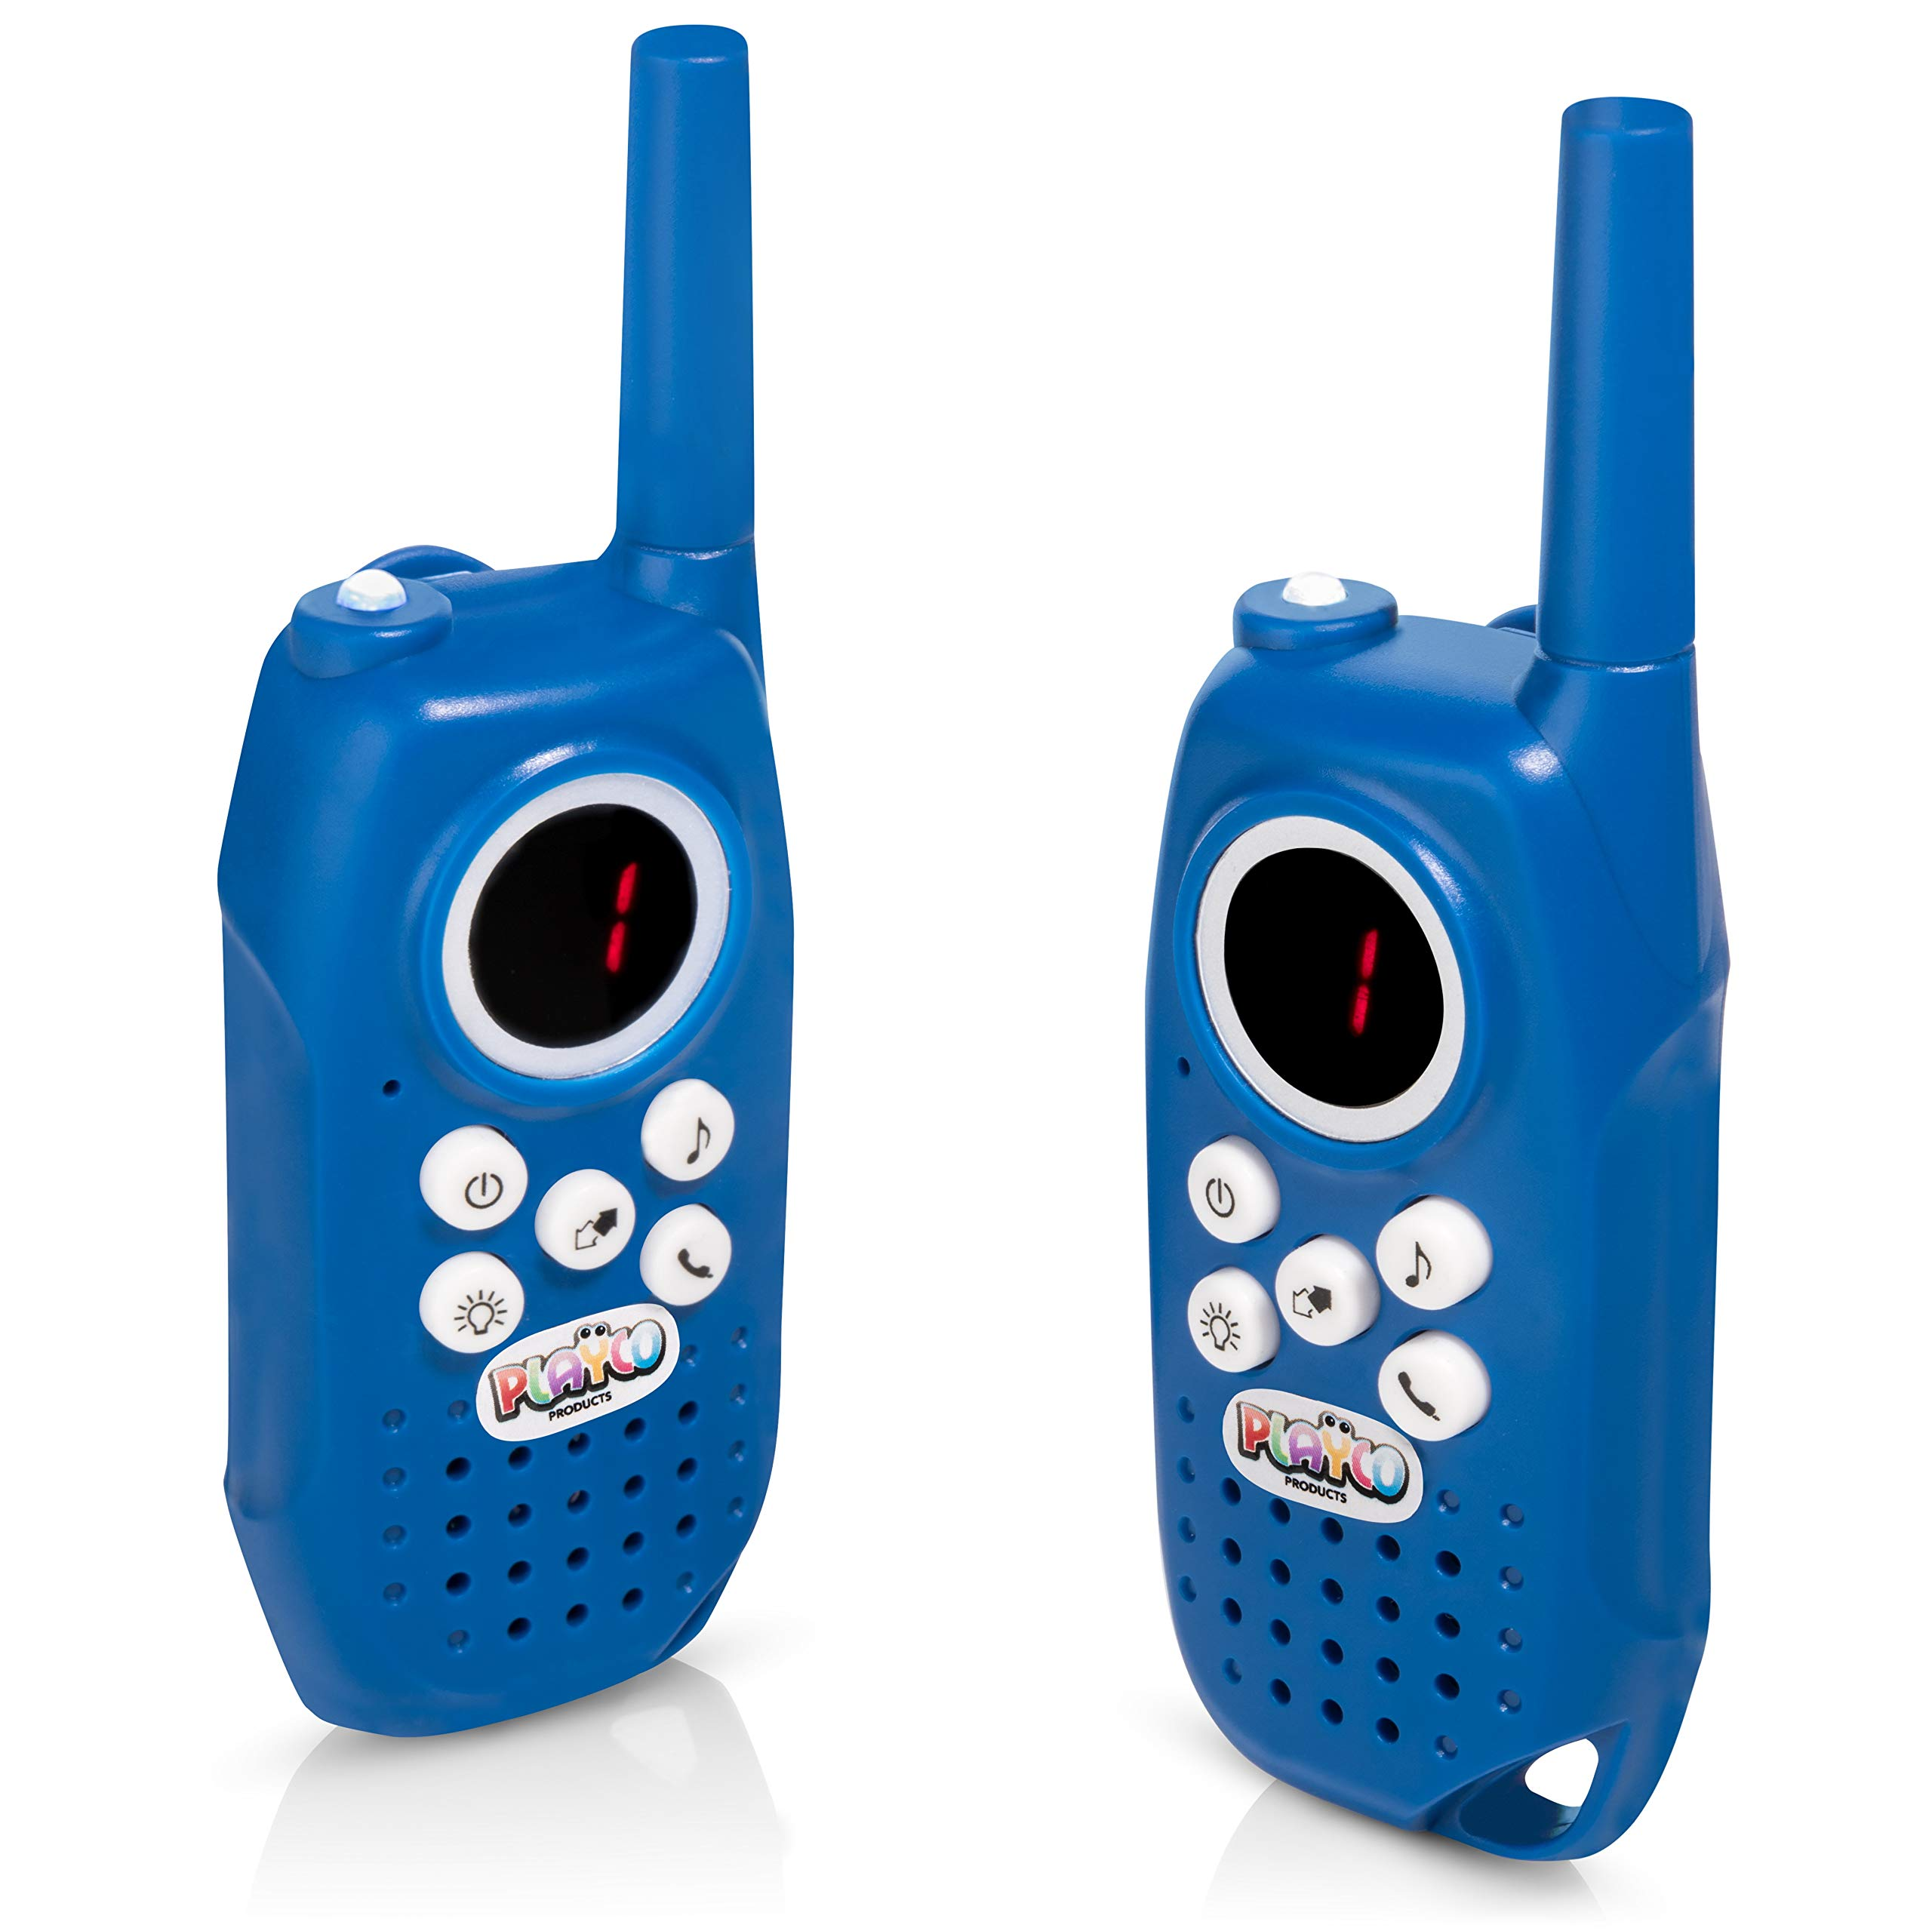 489c4f2c3071ed Playco Products Walkie Talkies for Kids - 2 Mile Range, Crystal Clear  Sound, Flashlight, Belt Clip - Keep it Simple with Our Easy to Learn 3  Channel Design